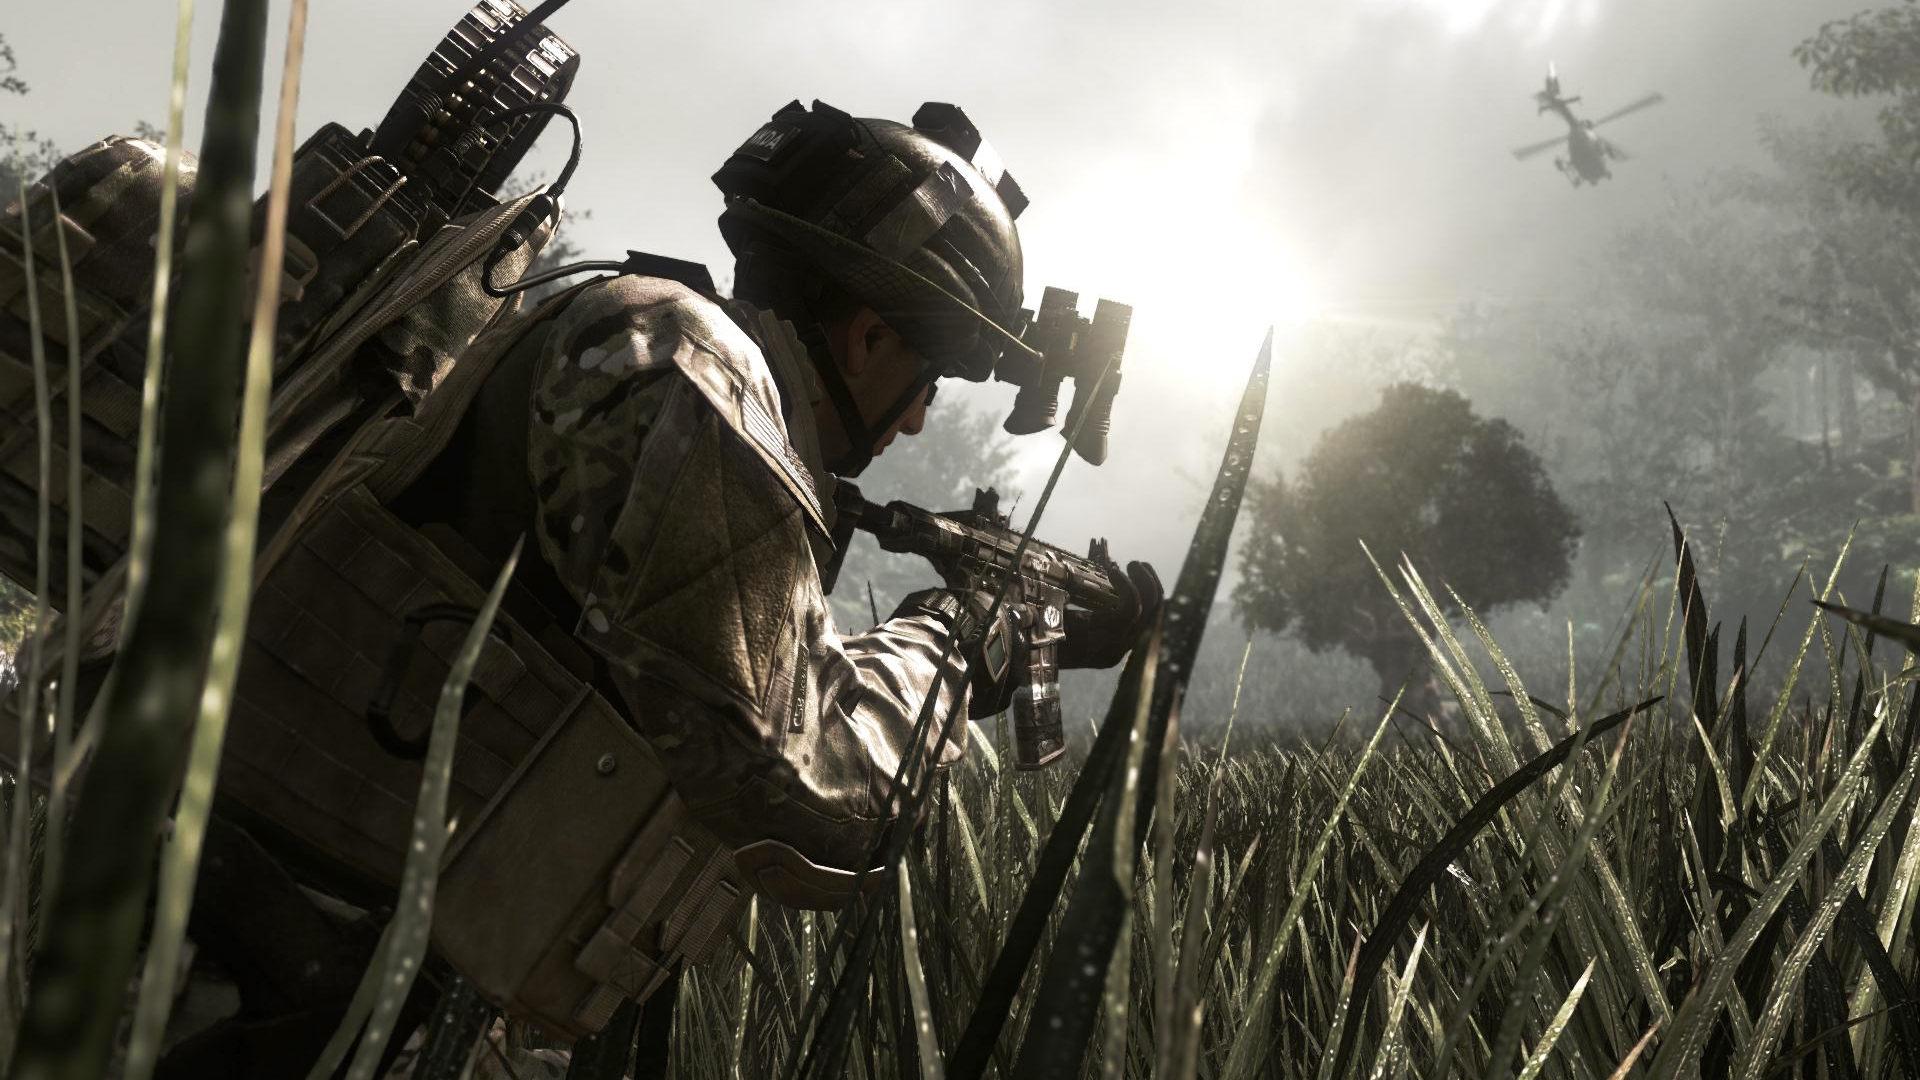 Call-of-Duty-Ghosts-war-in-the-weeds